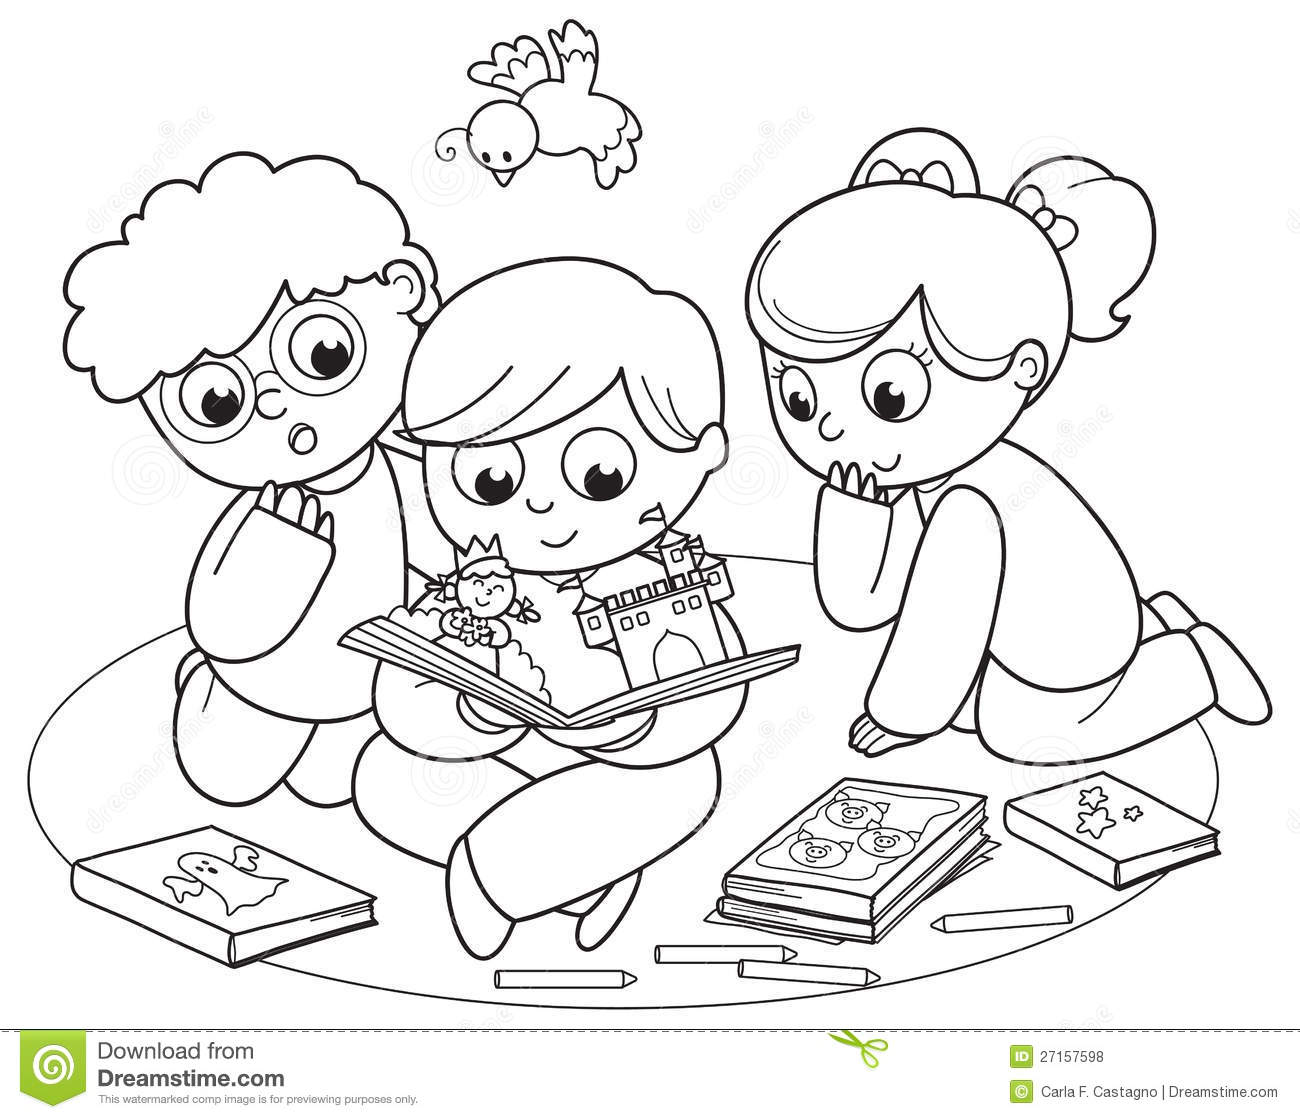 Free coloring pages for reading - Co Coloring Book Ultraman Coloring Book Ultraman Royalty Free Stock Photos Three Kids Reading Pop